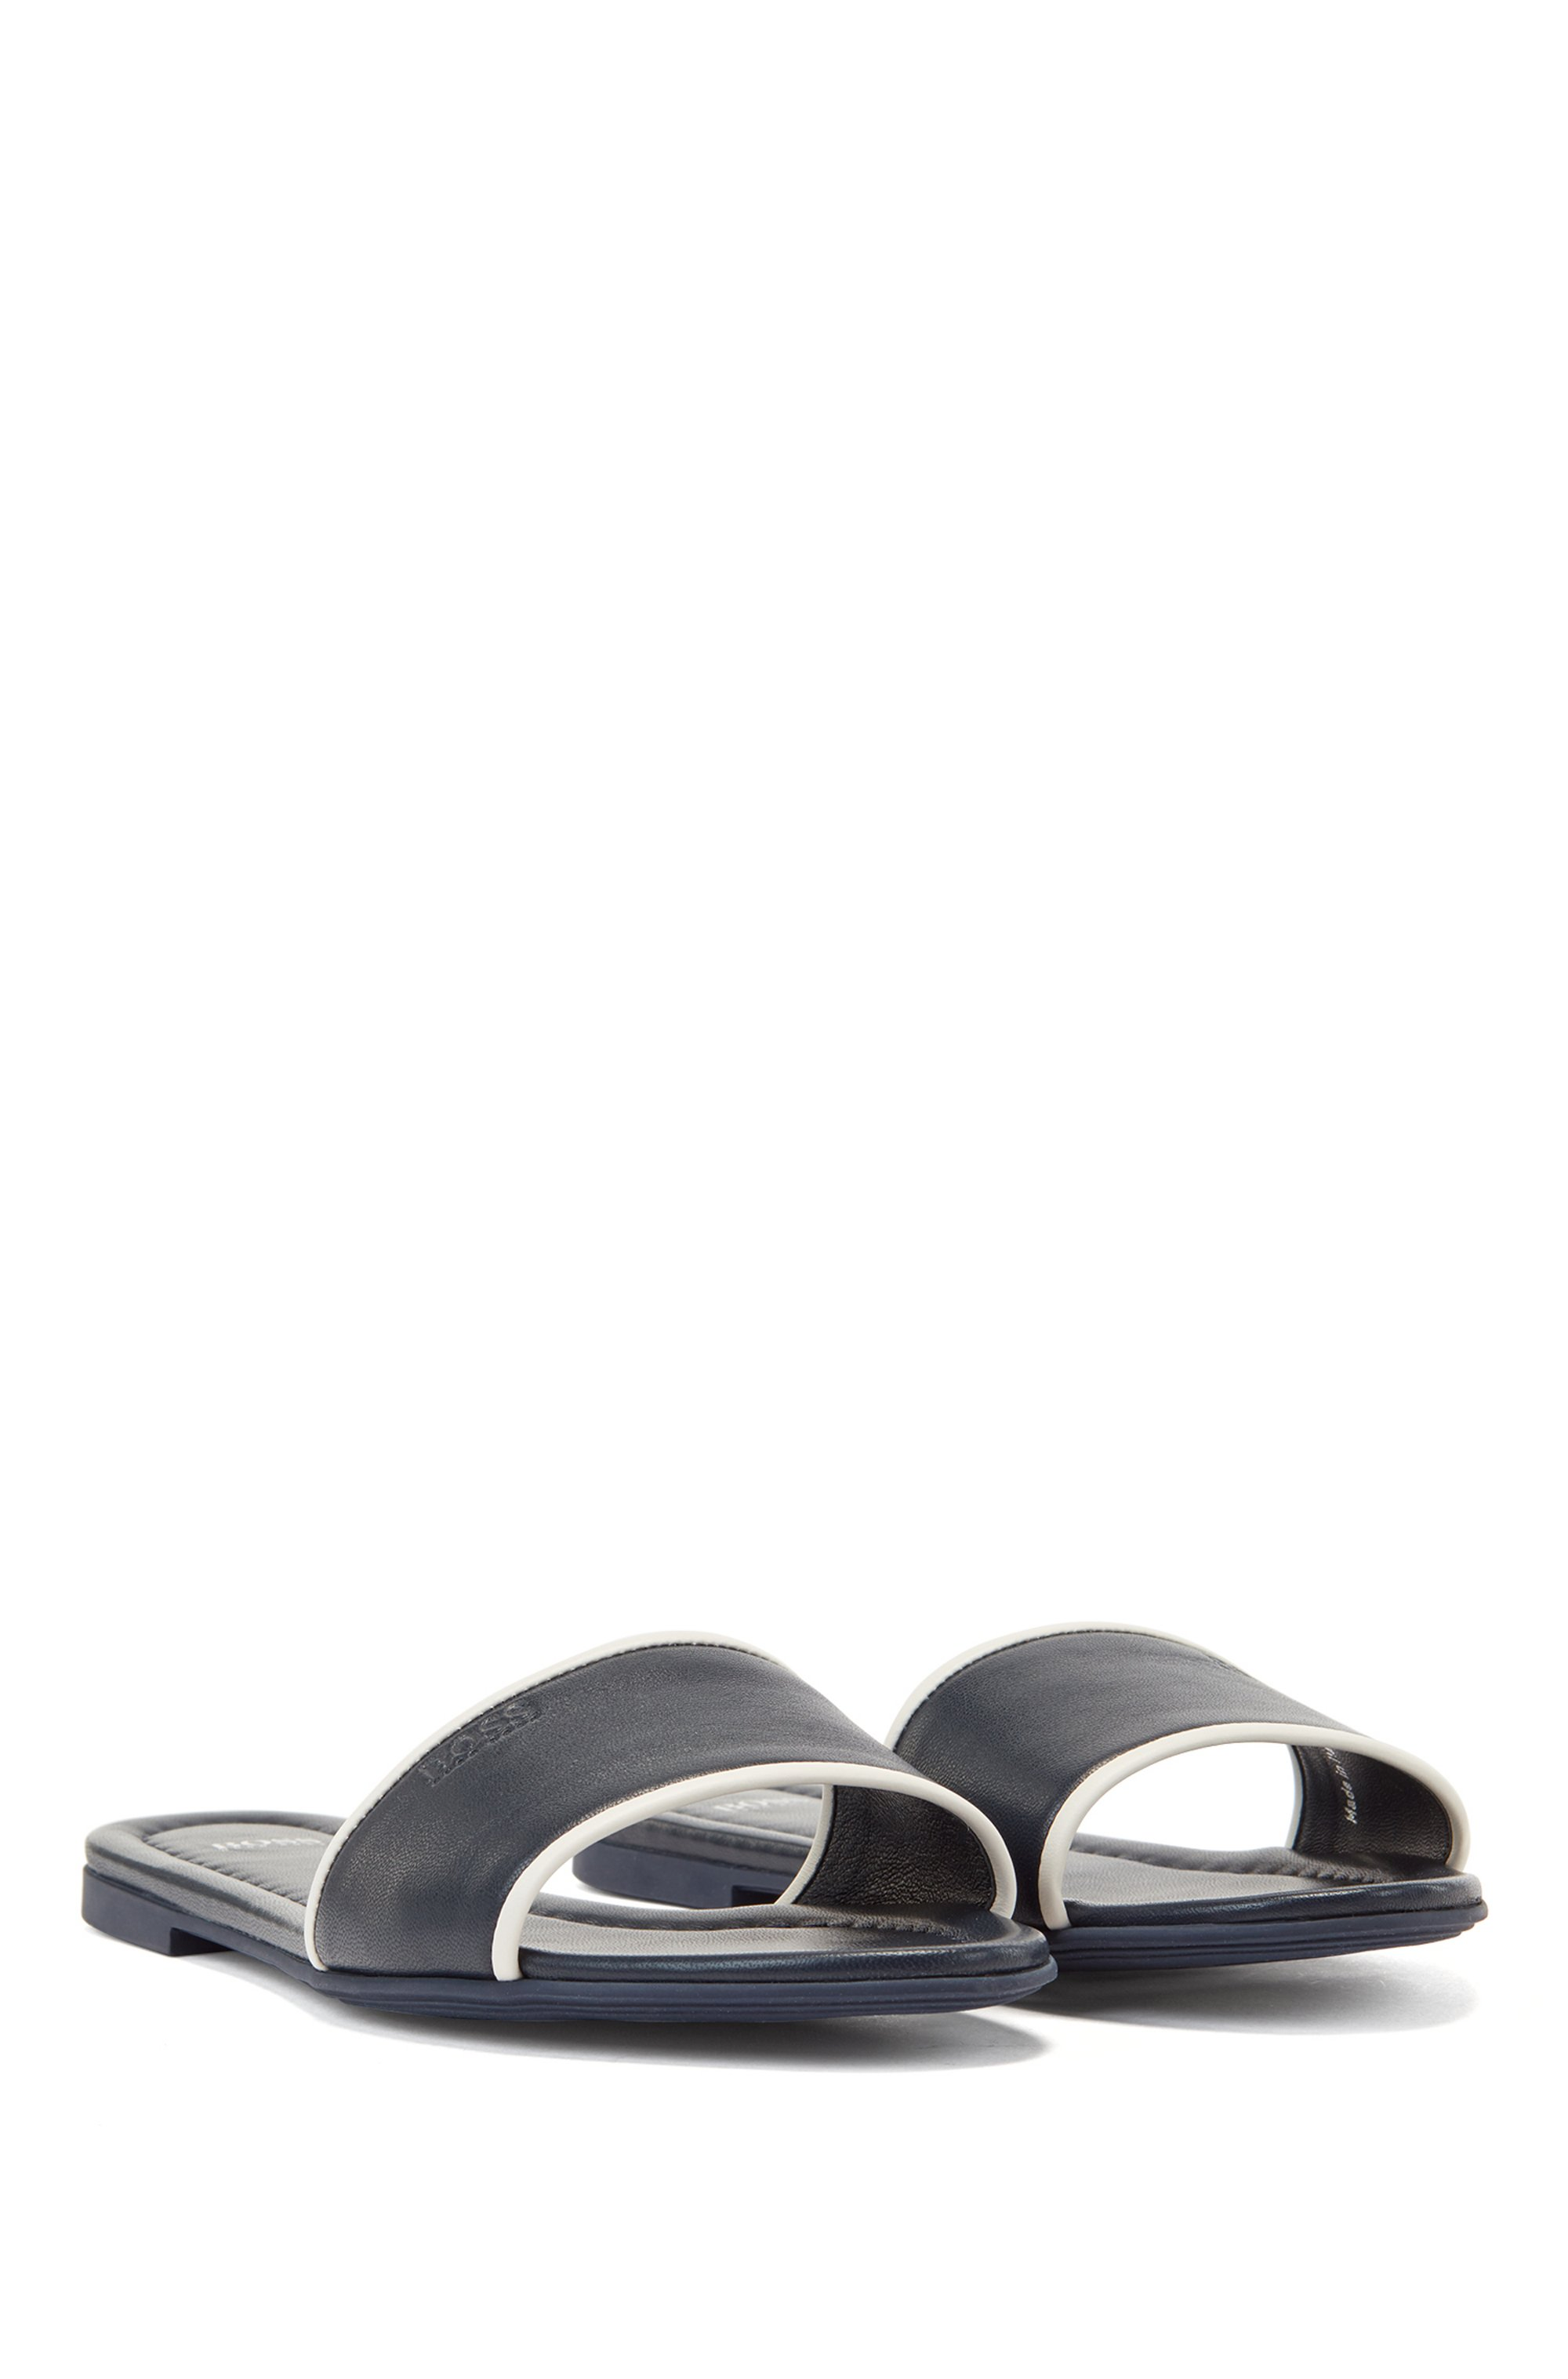 Nappa-leather slides with debossed logo